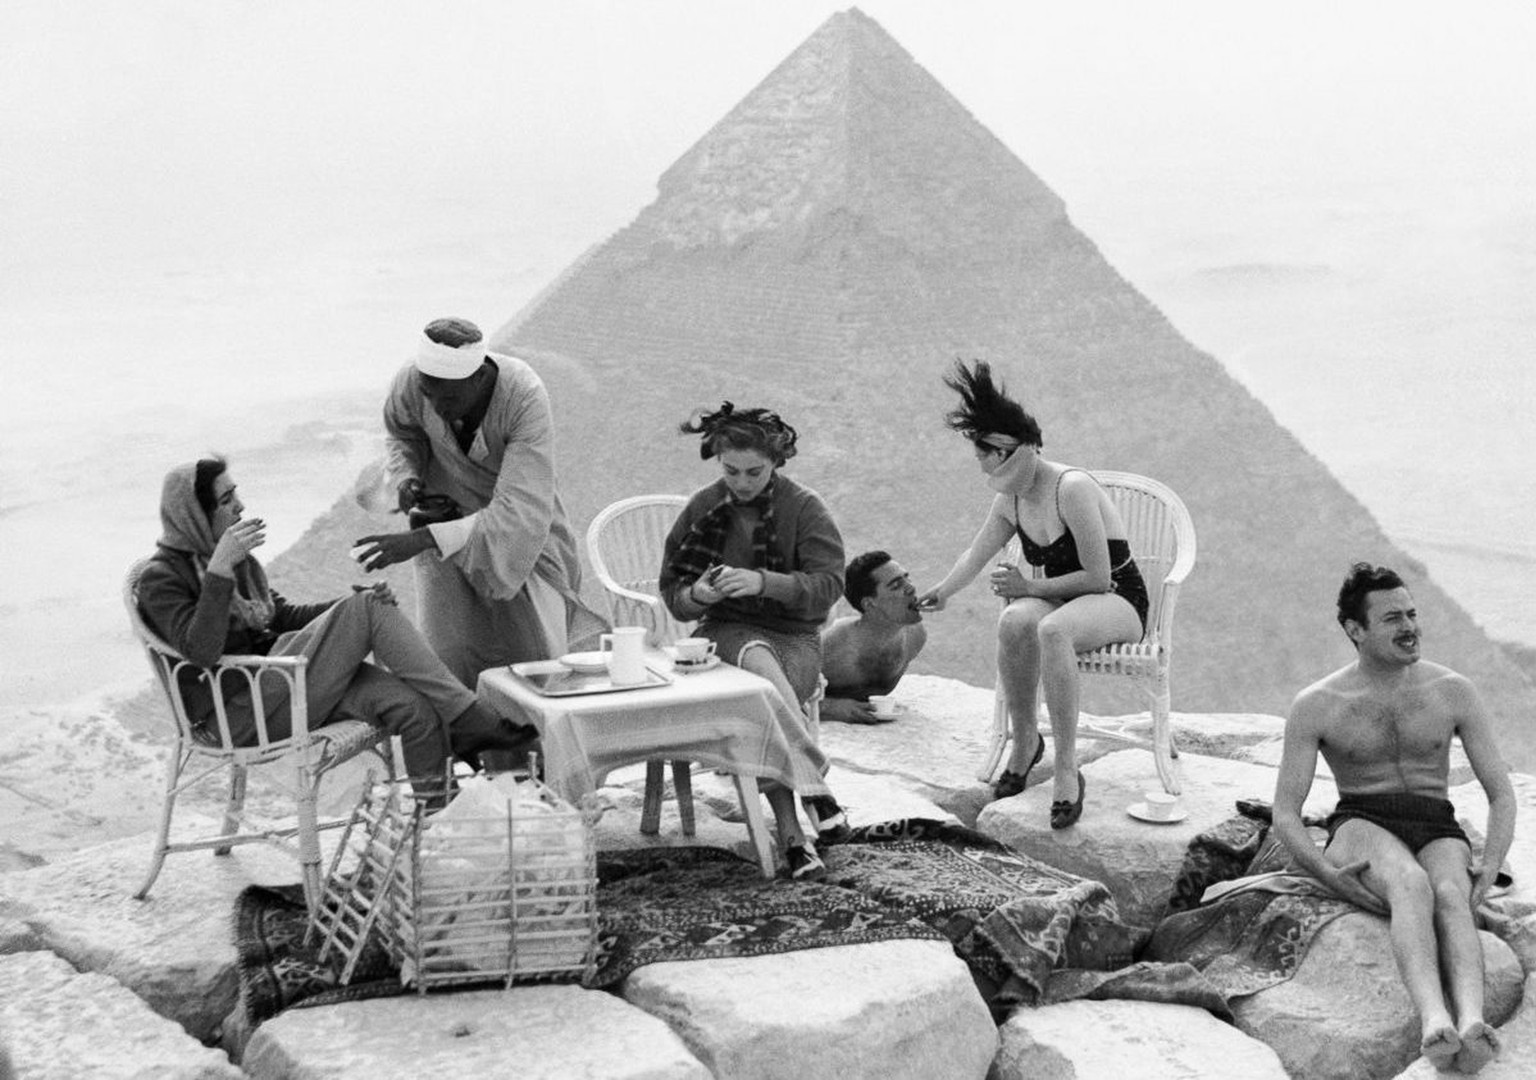 Tourists lounging on top of the Great Pyramid of Giza in 1938. [930 x 1207] bild: reddit